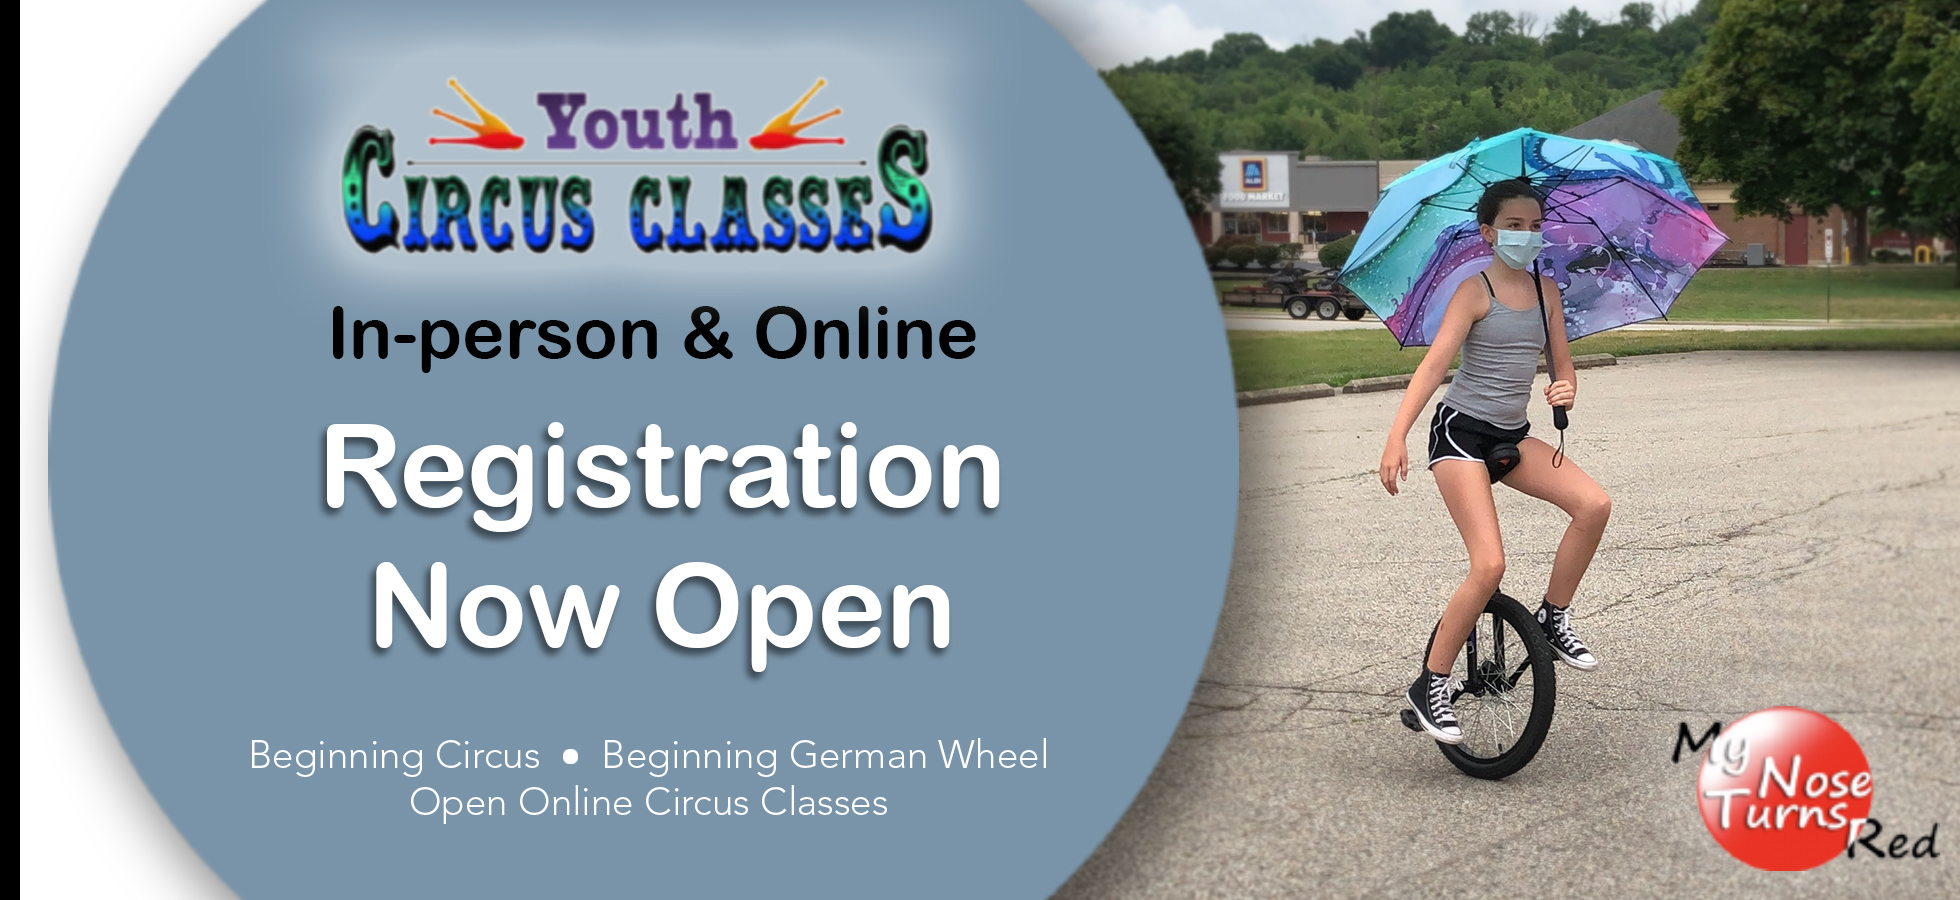 Registration for Fall Circus Classes is Open!